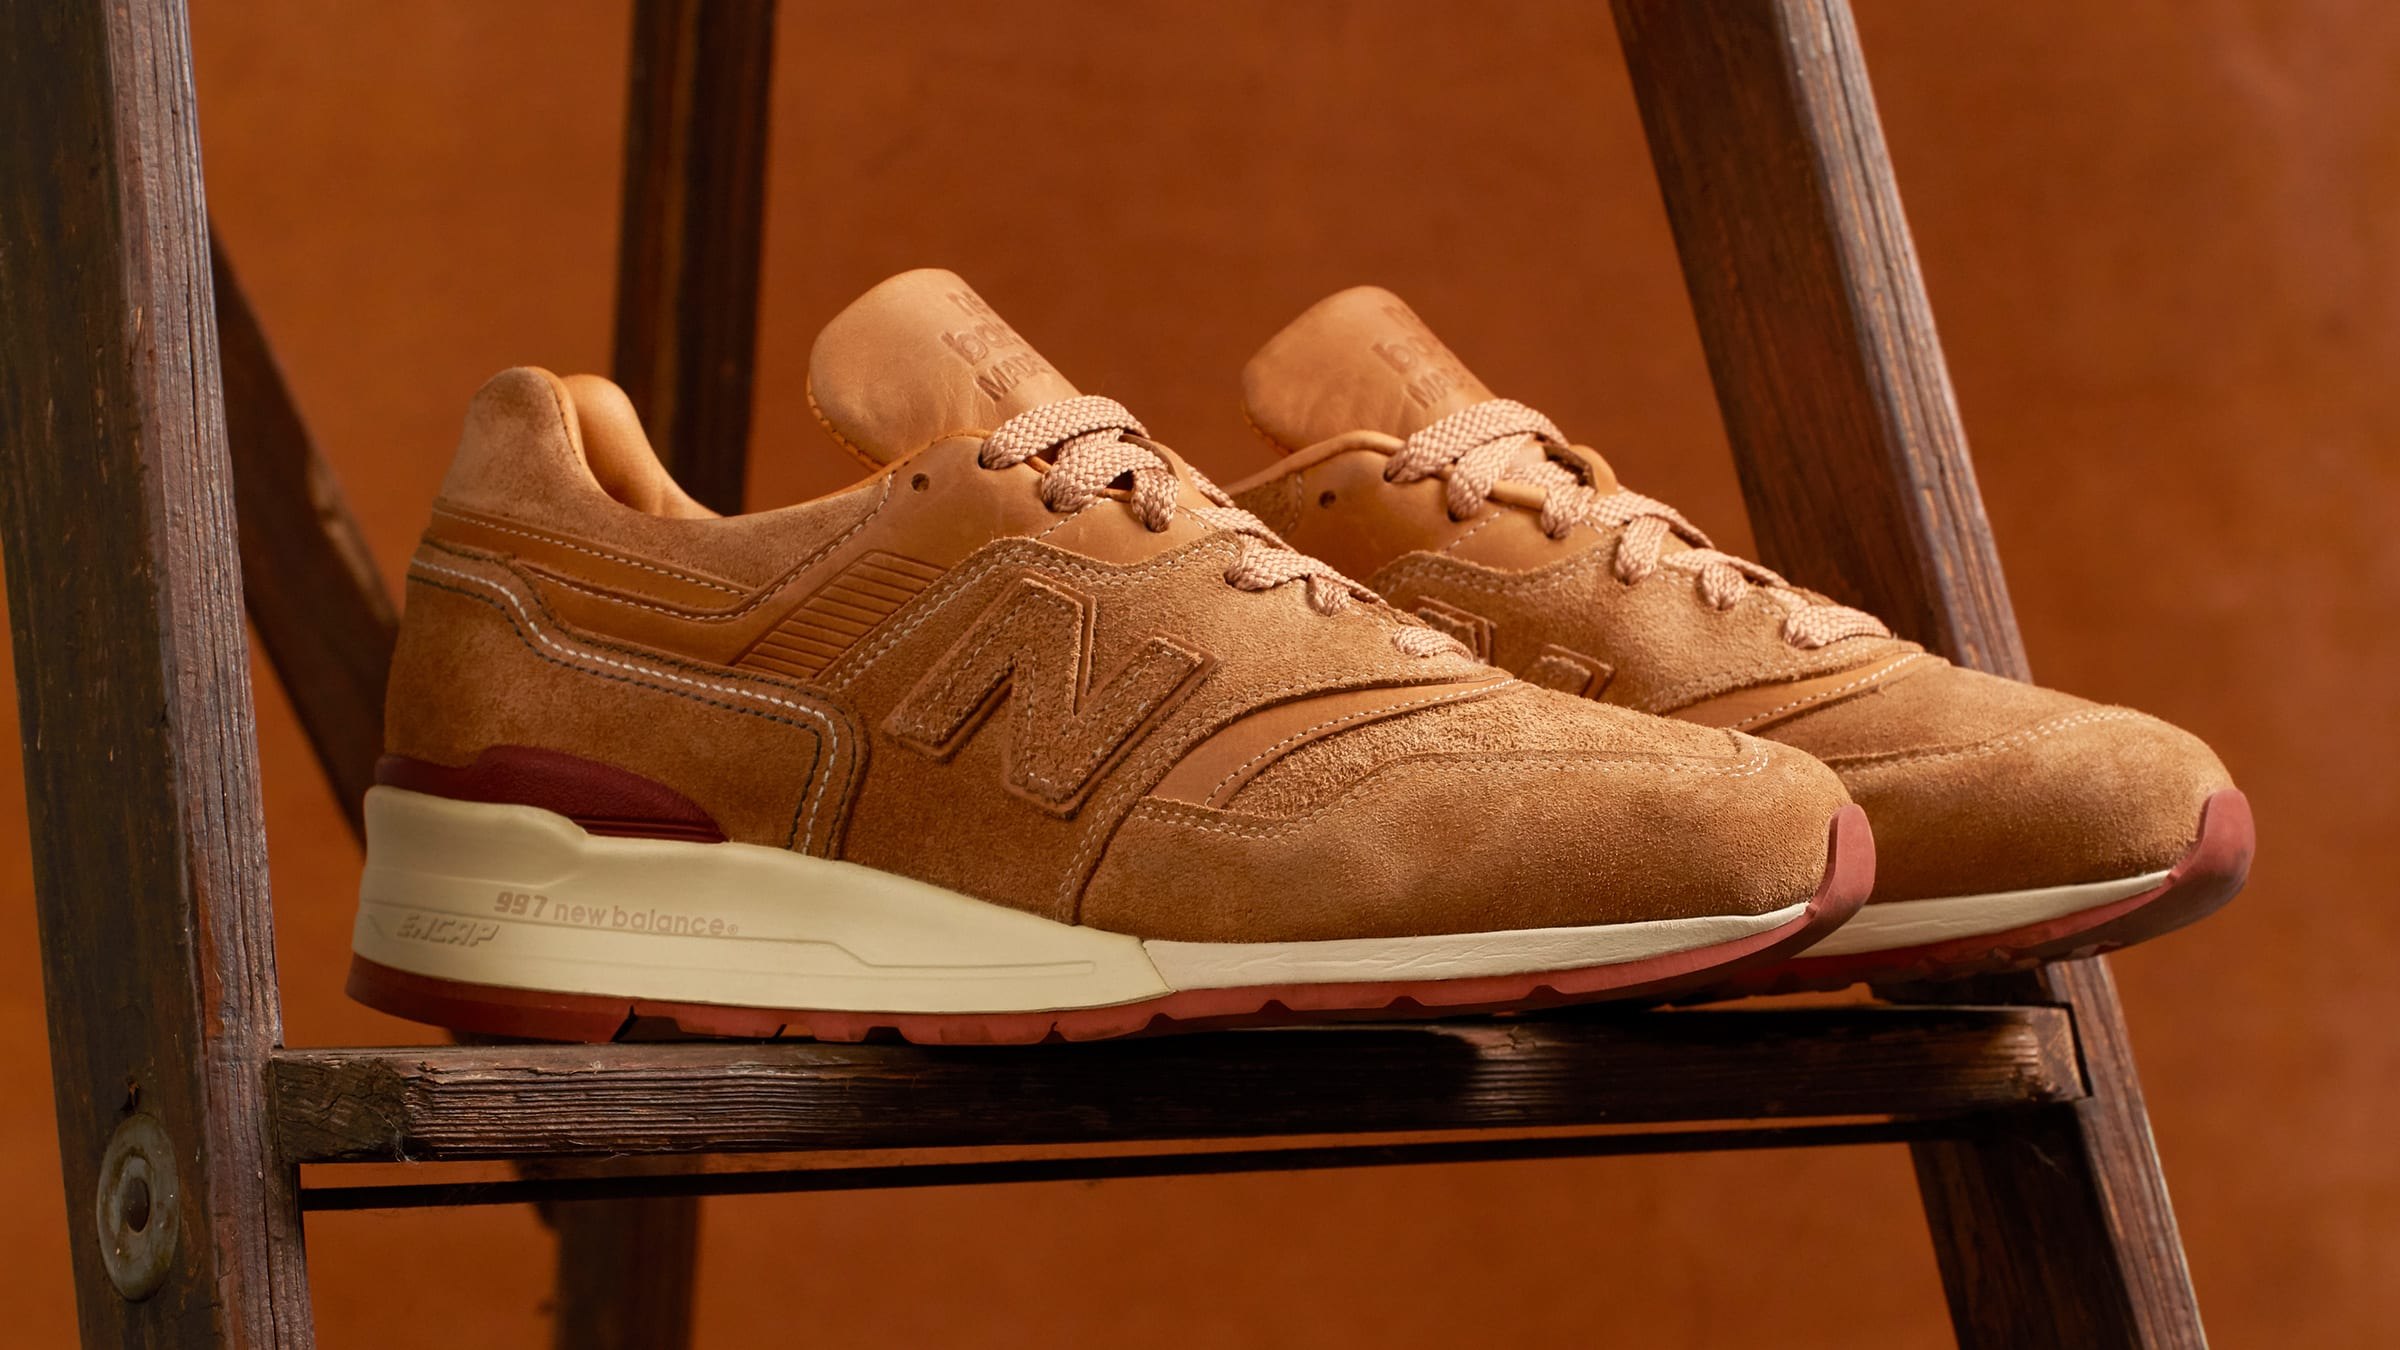 Red Wing x New Balance 997 | M997RW